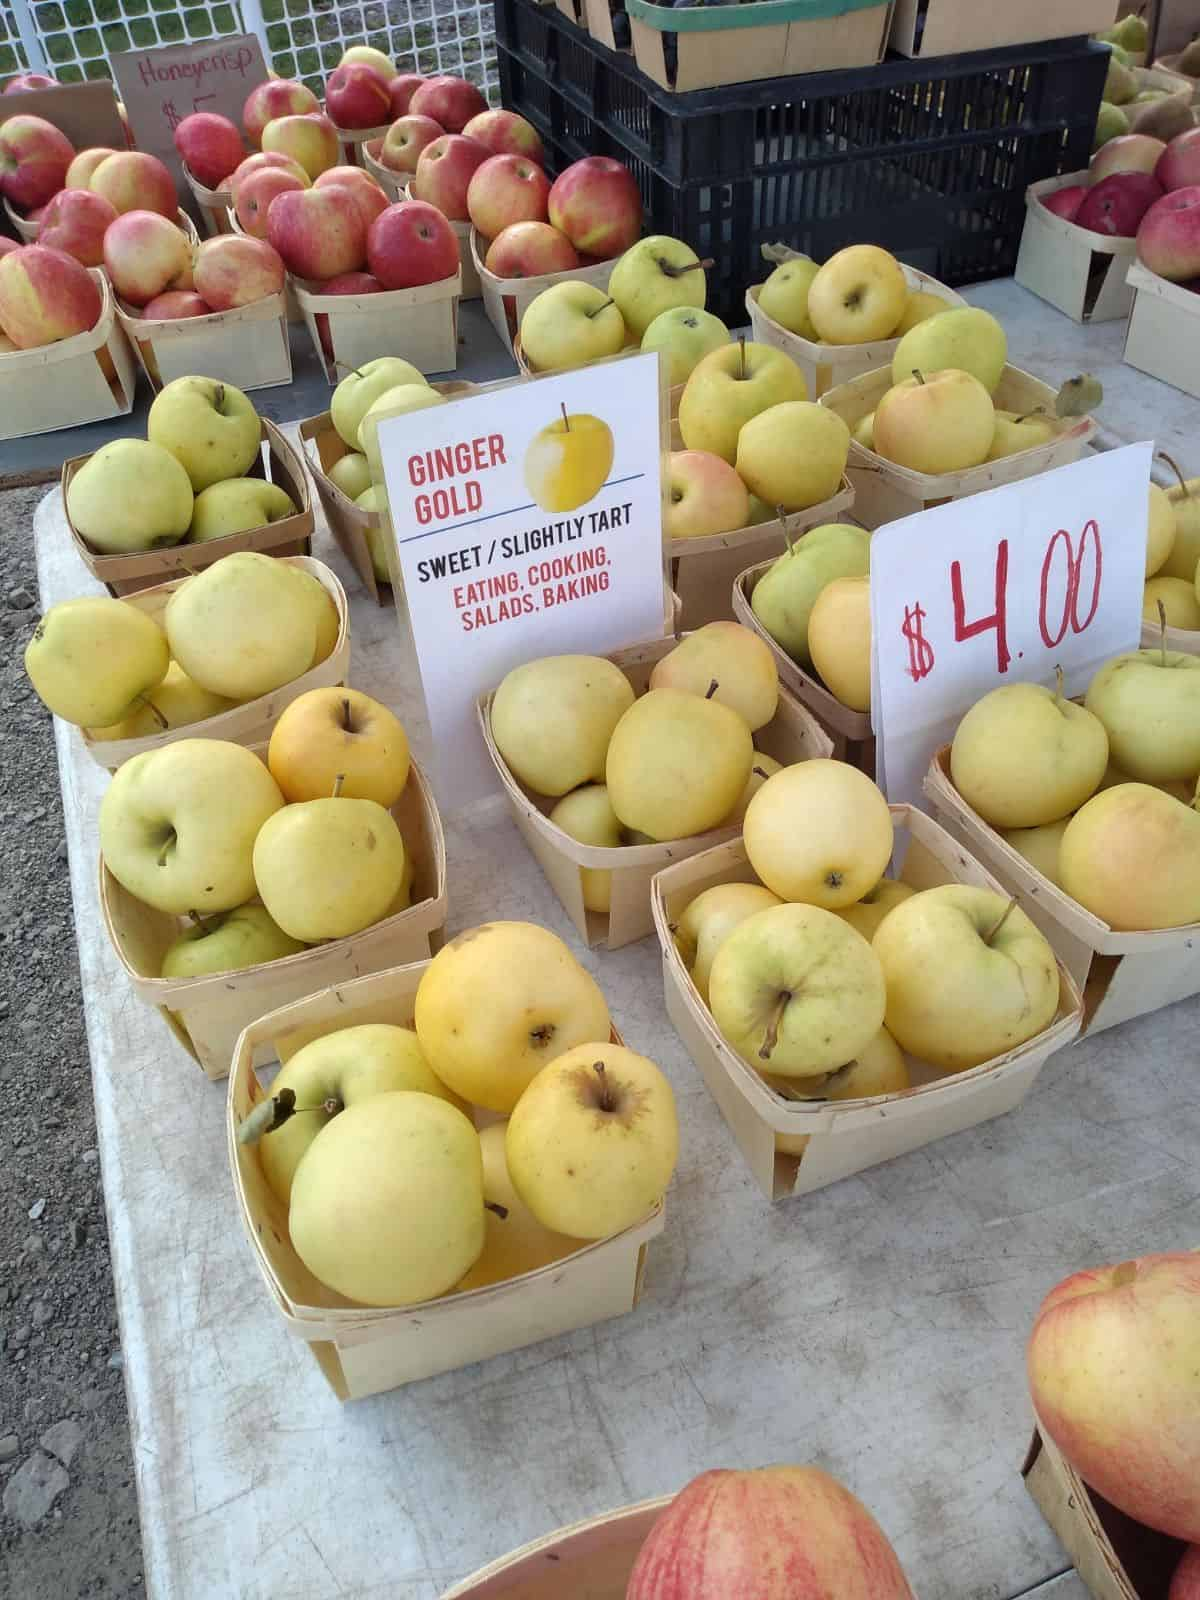 Wood containers filled with Ginger Gold apples on a table at a Farmer's Market. A sign says the apples are $4 per container. Another sign says that Ginger Gold apples are sweet/slightly tart. Good for eating, cooking, salads, and baking.